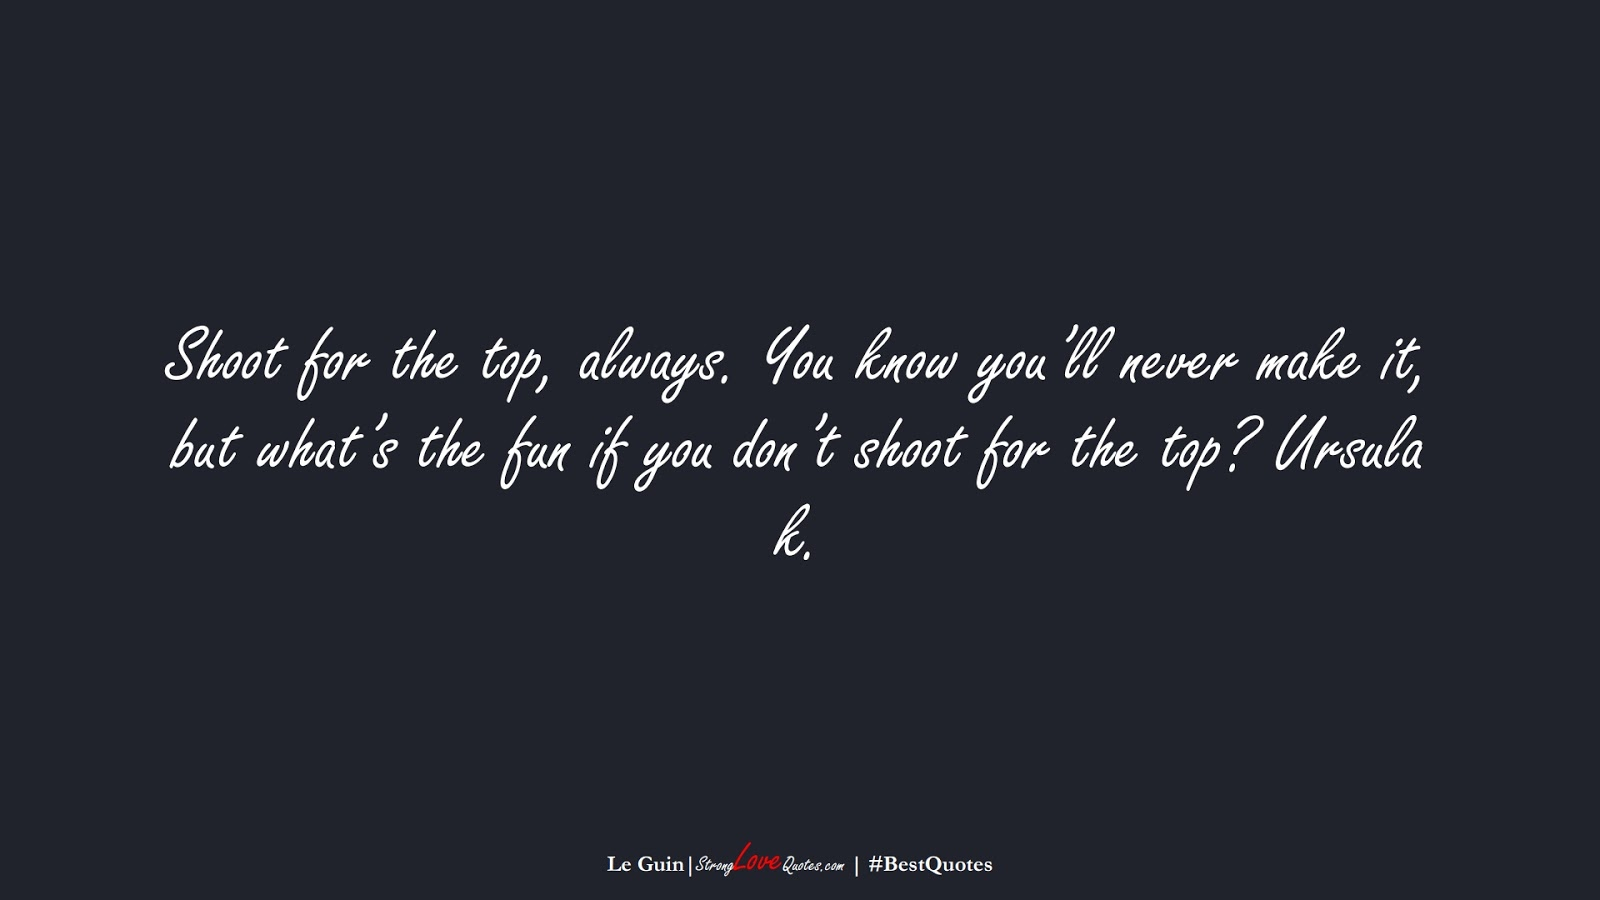 Shoot for the top, always. You know you'll never make it, but what's the fun if you don't shoot for the top? Ursula k. (Le Guin);  #BestQuotes